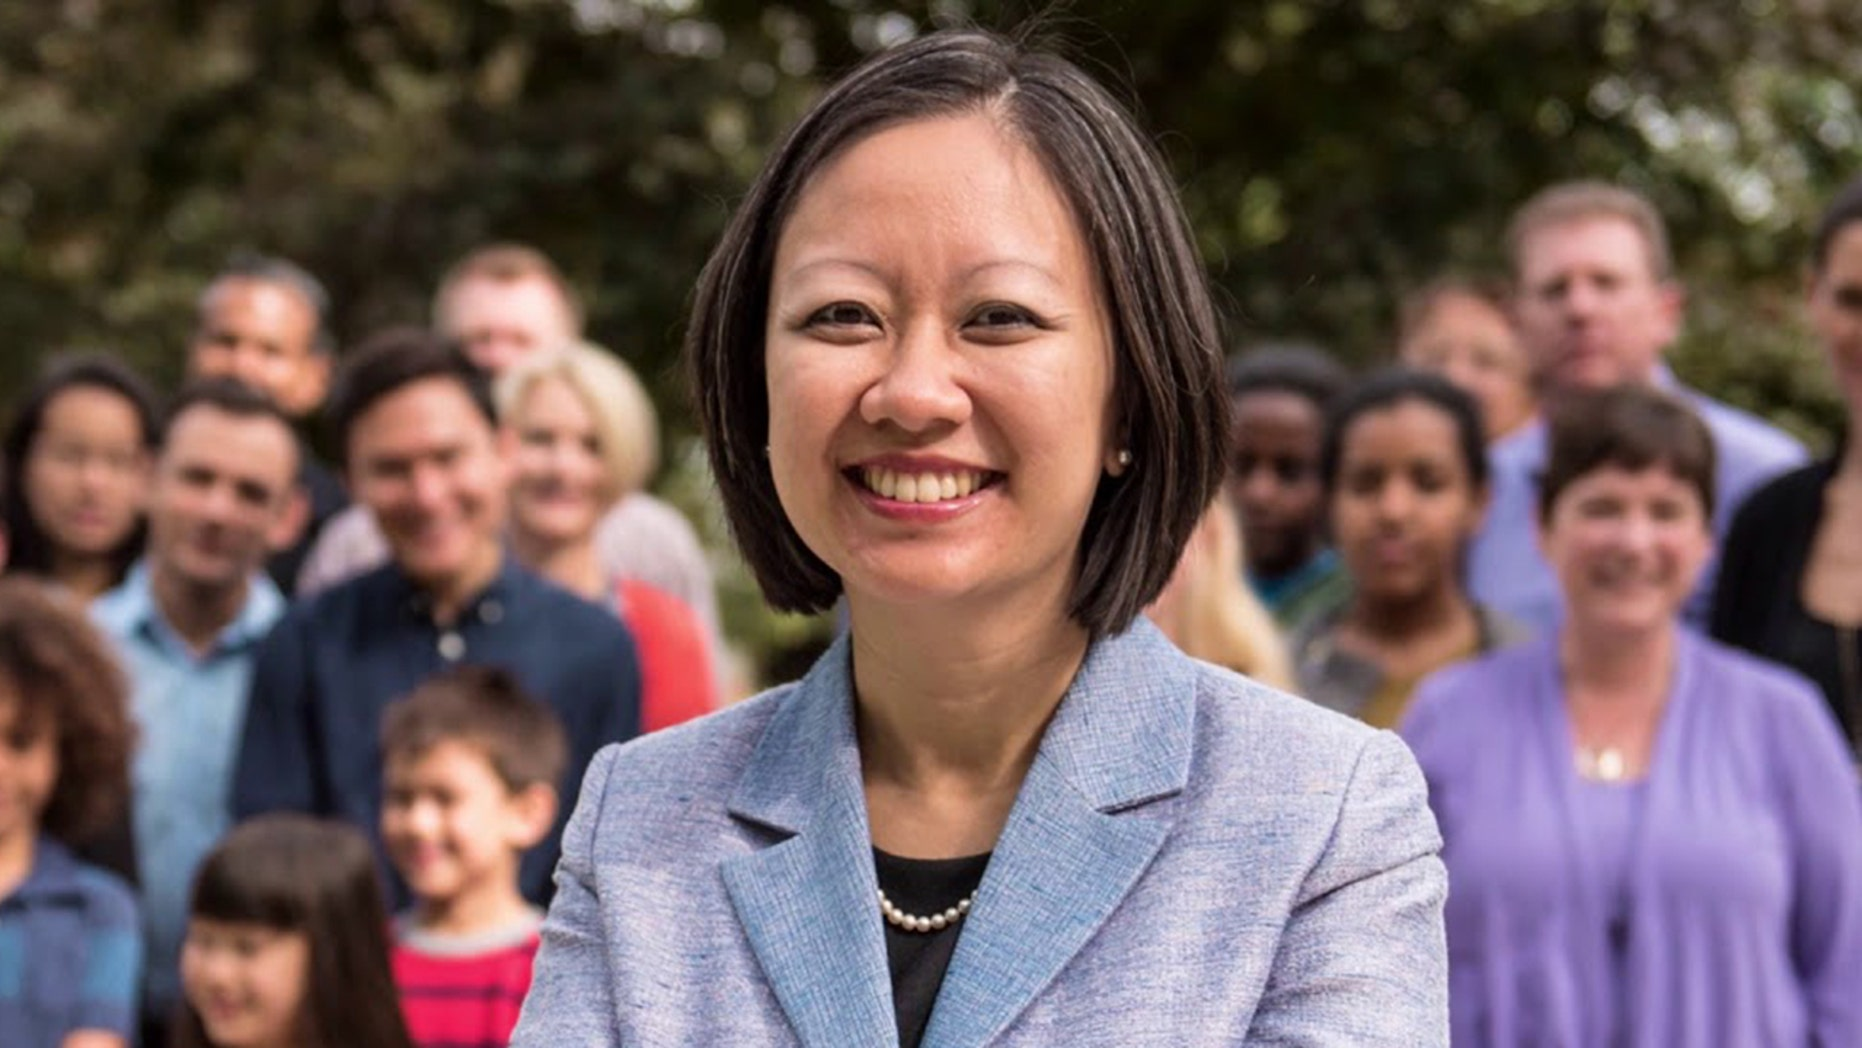 Virginia Democrat Del. Kathy Tran is the sponsor of the Repeal Act, which seeks to repeal restrictions on third-trimester abortions. (Kathyfordelegate.com)